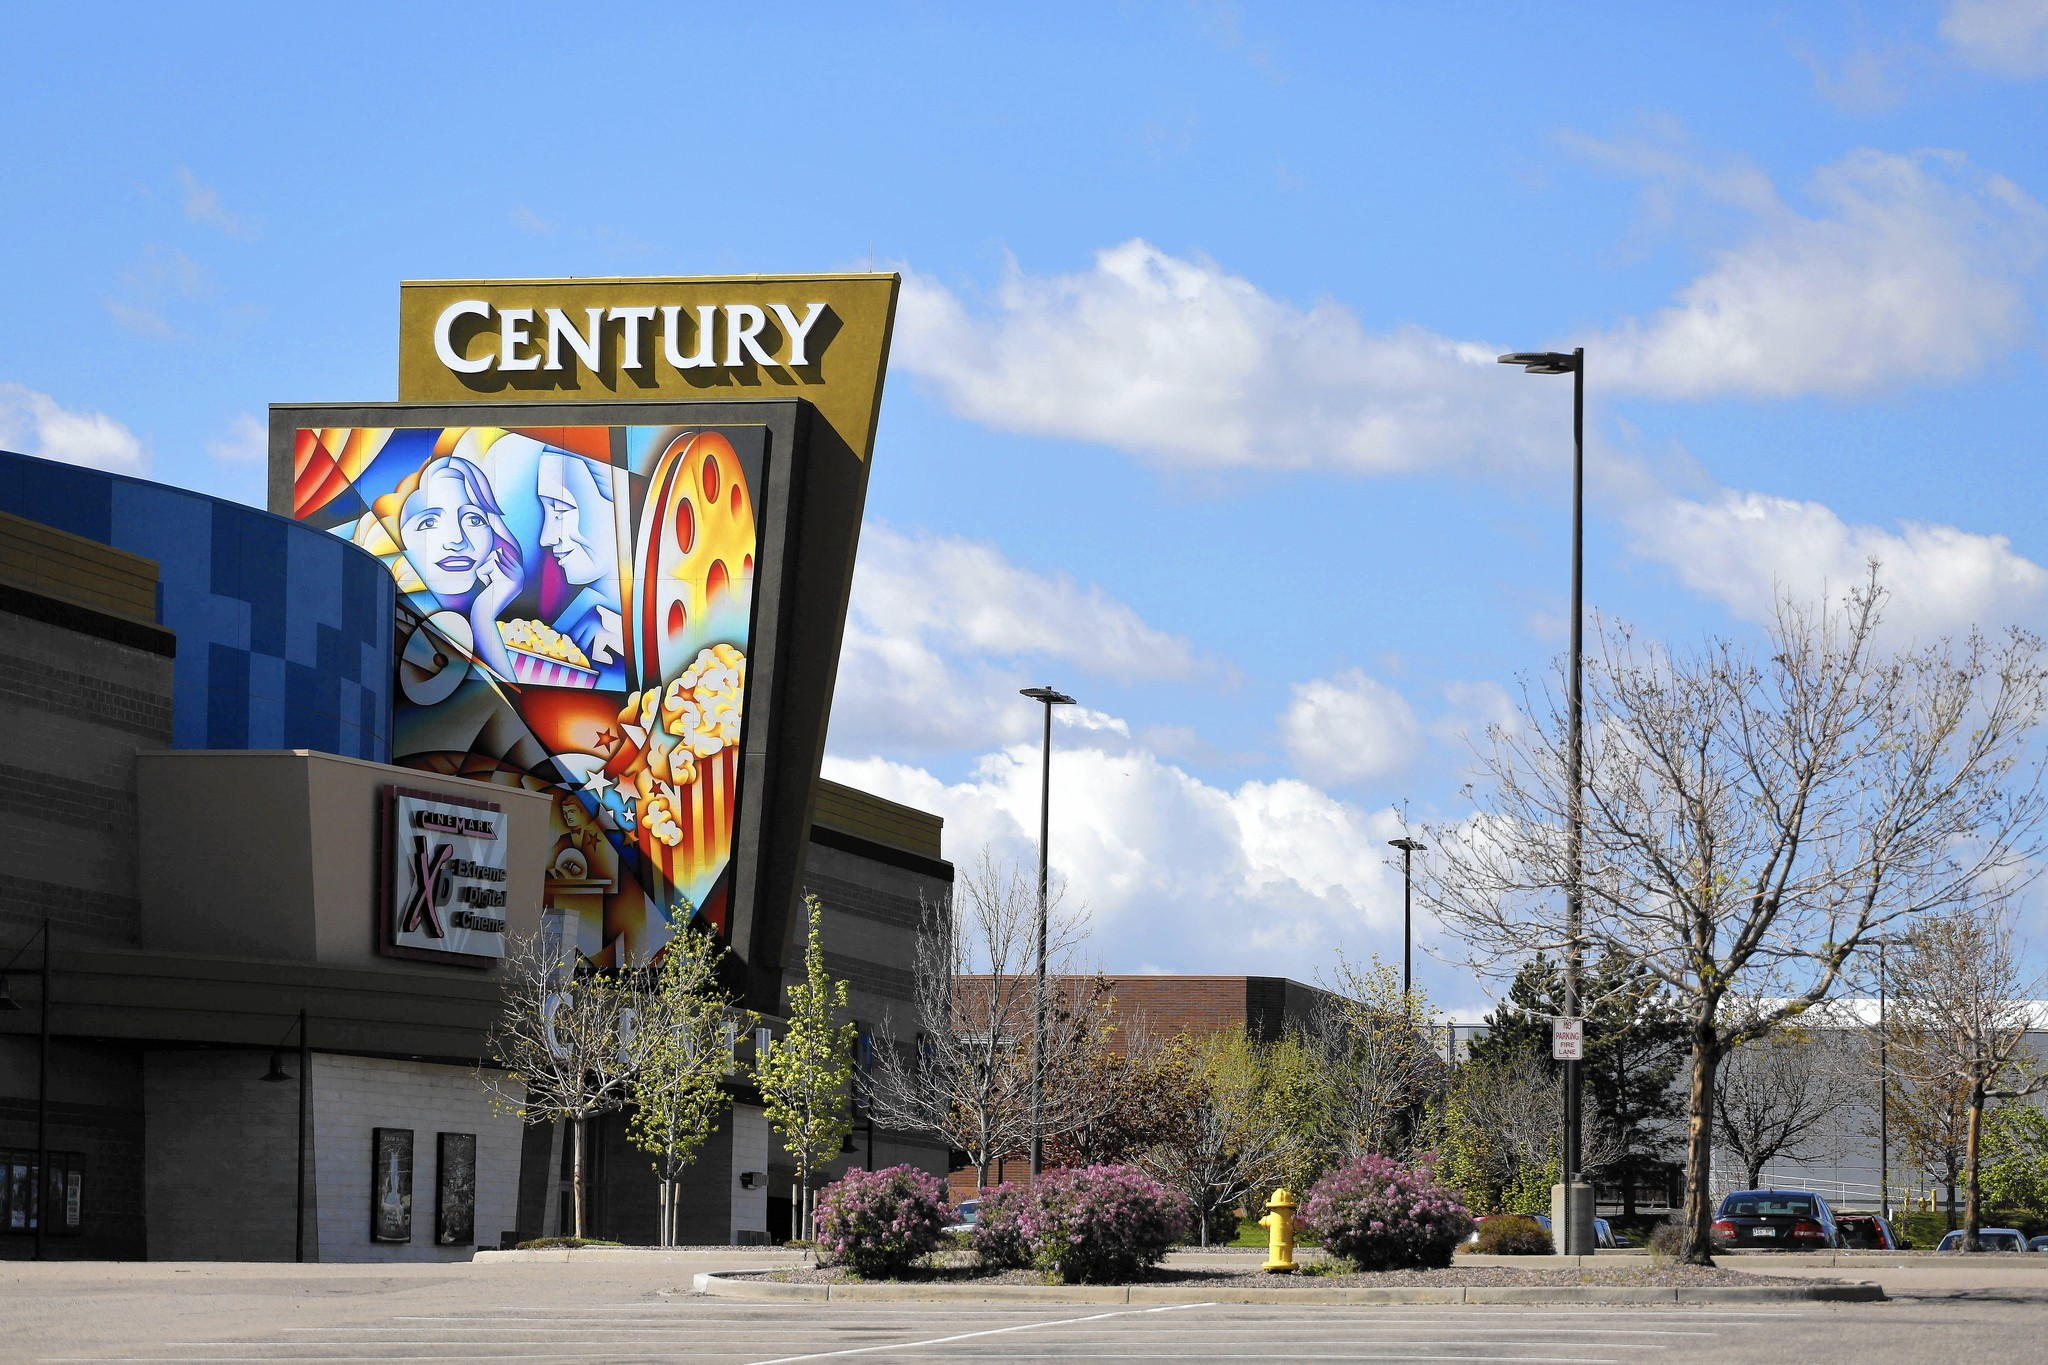 Cinemark looks awful seeking $700,000 from Aurora shooting victims who sued